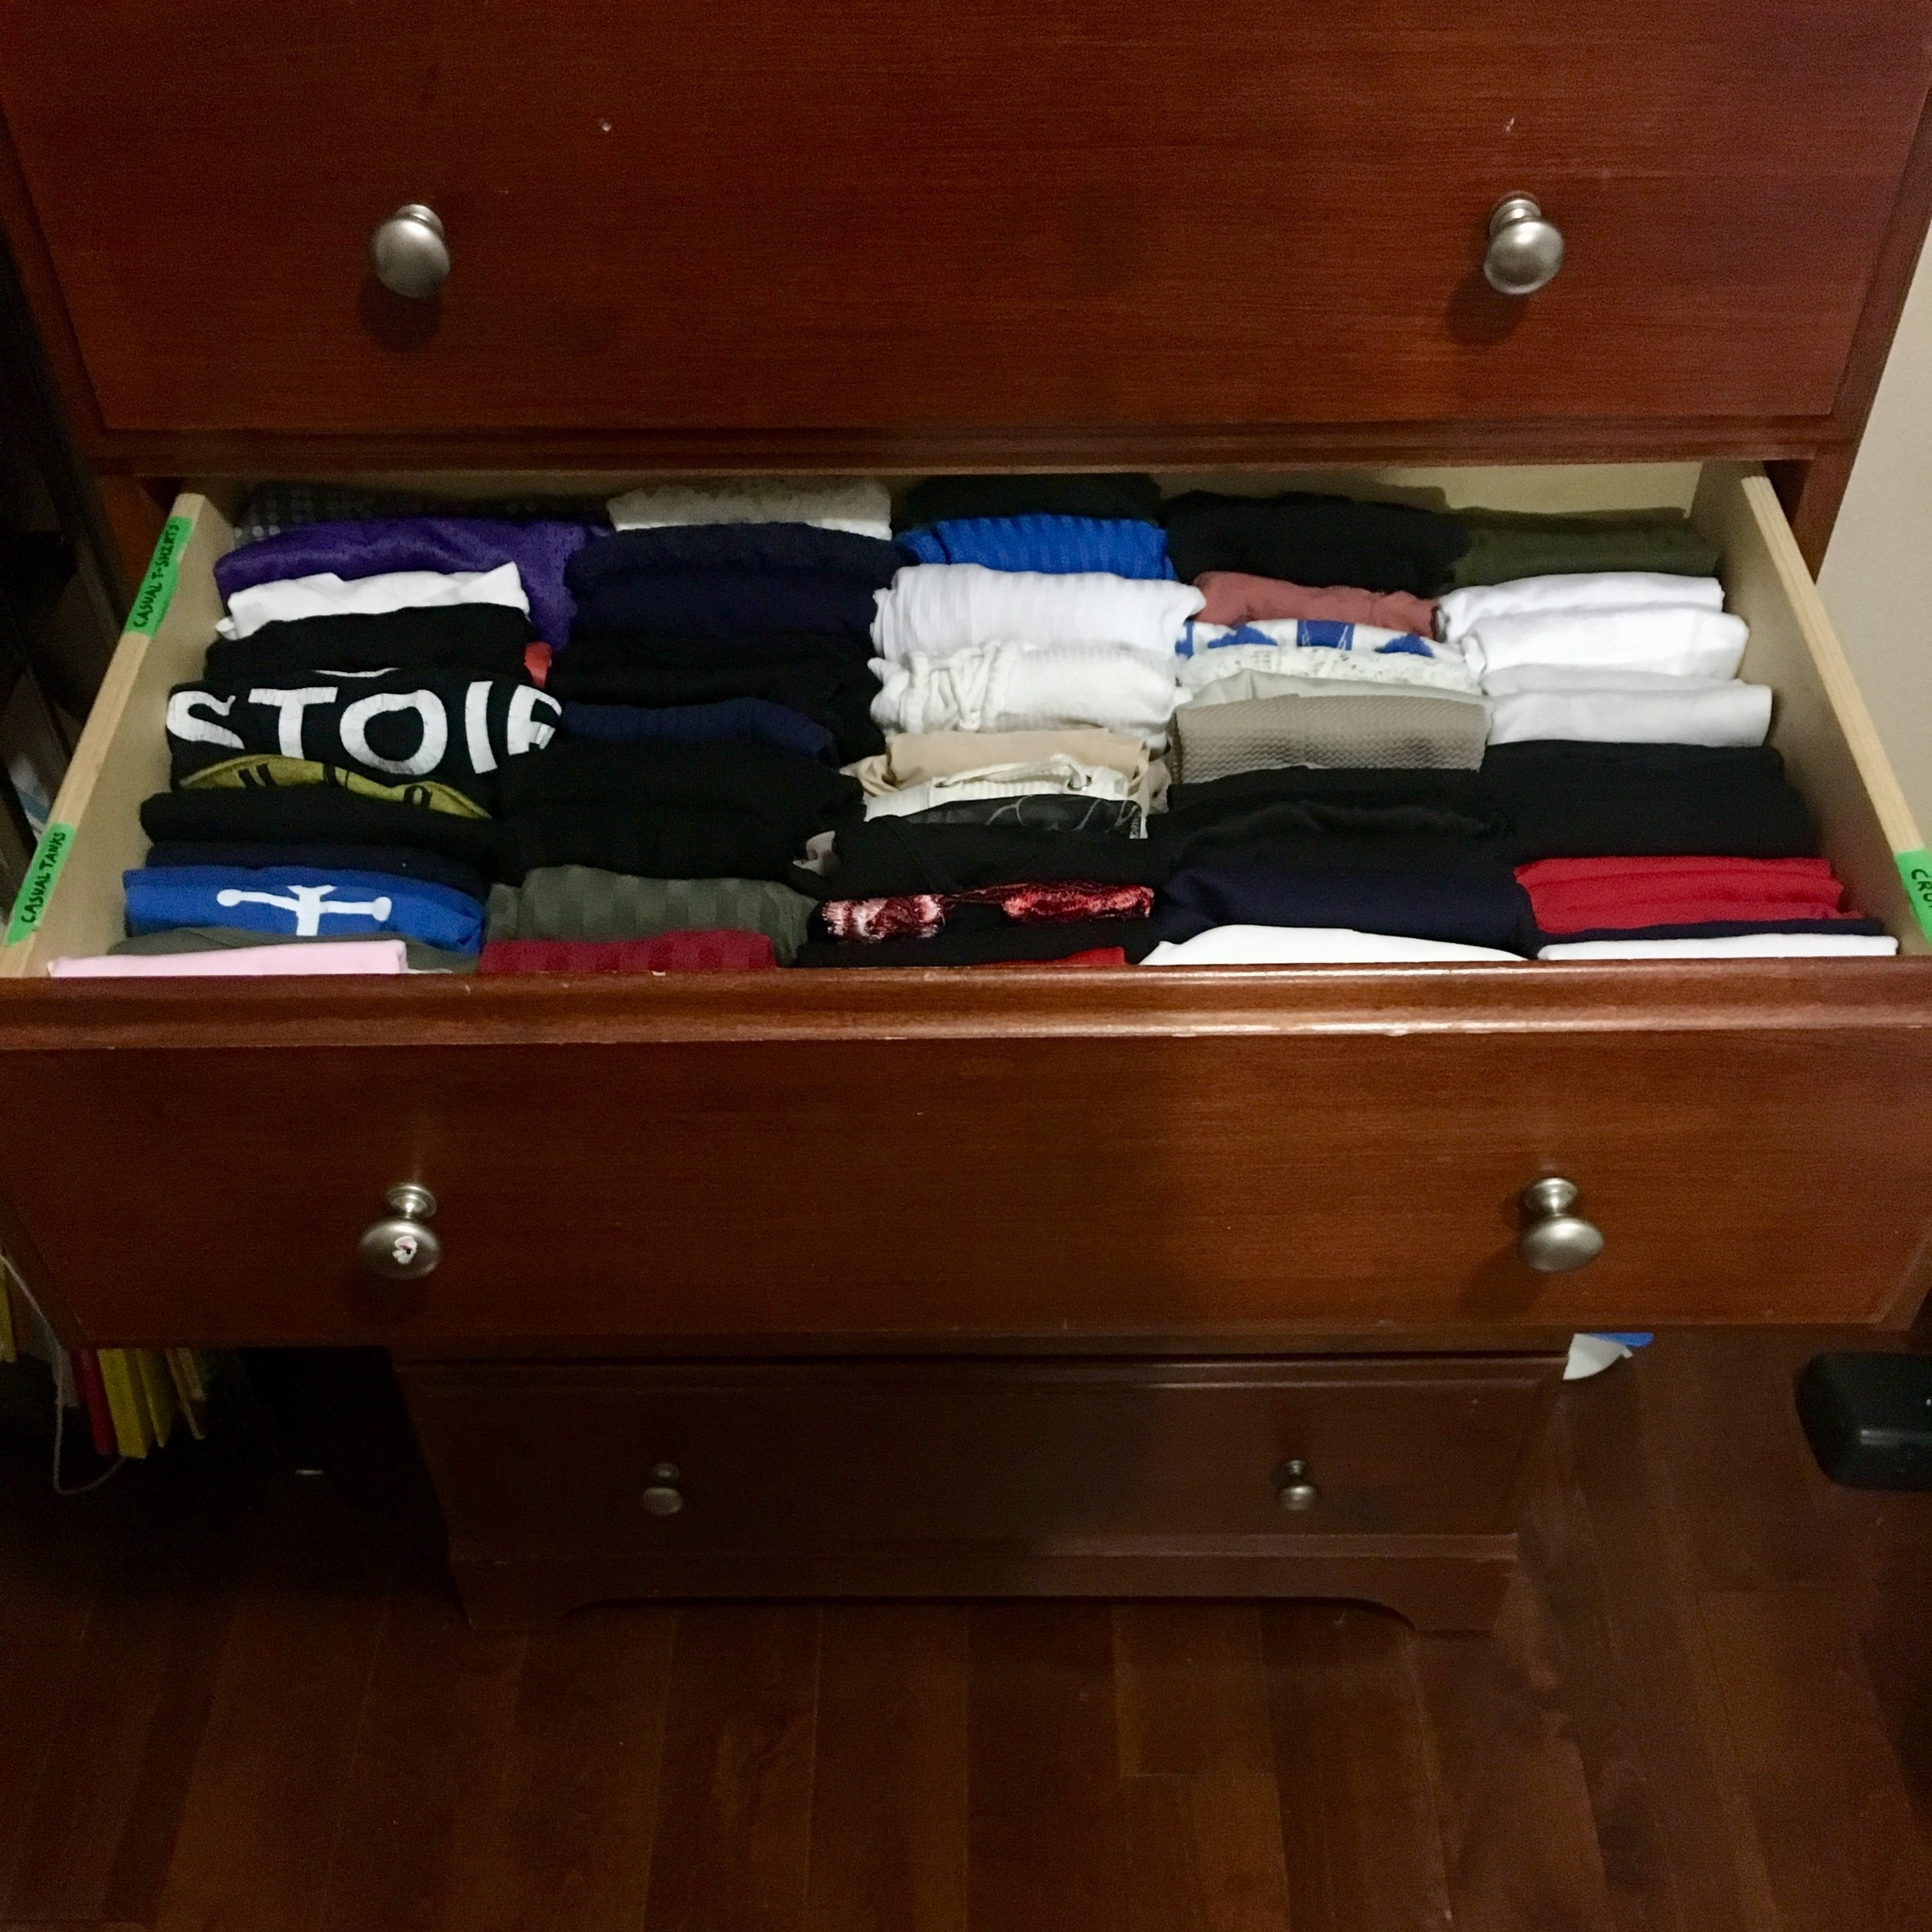 Drawer 2: After